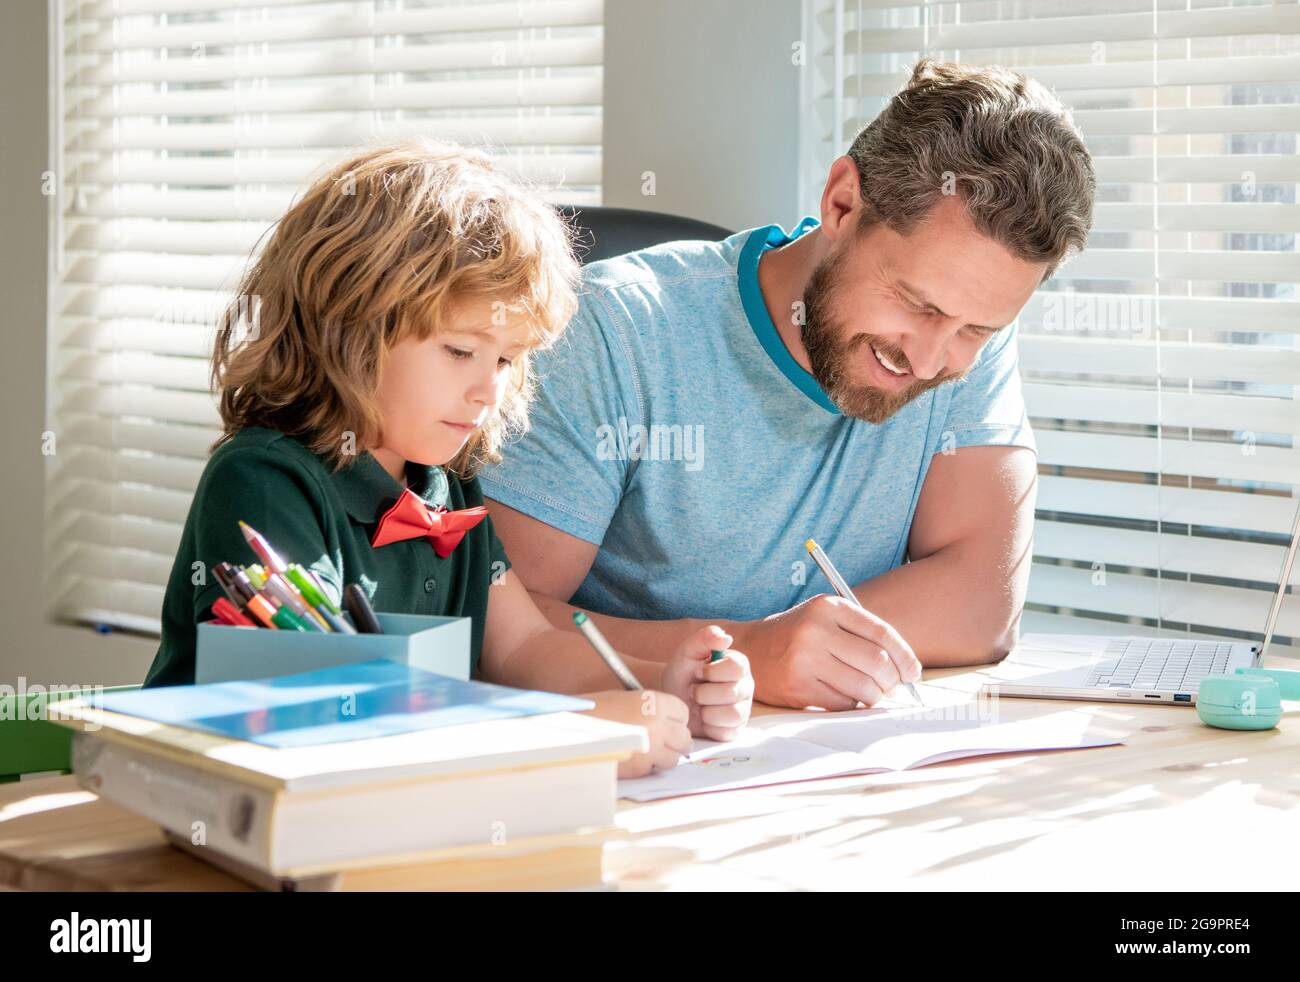 private writing lesson. education concept. homeschooling and self-education. Stock Photo